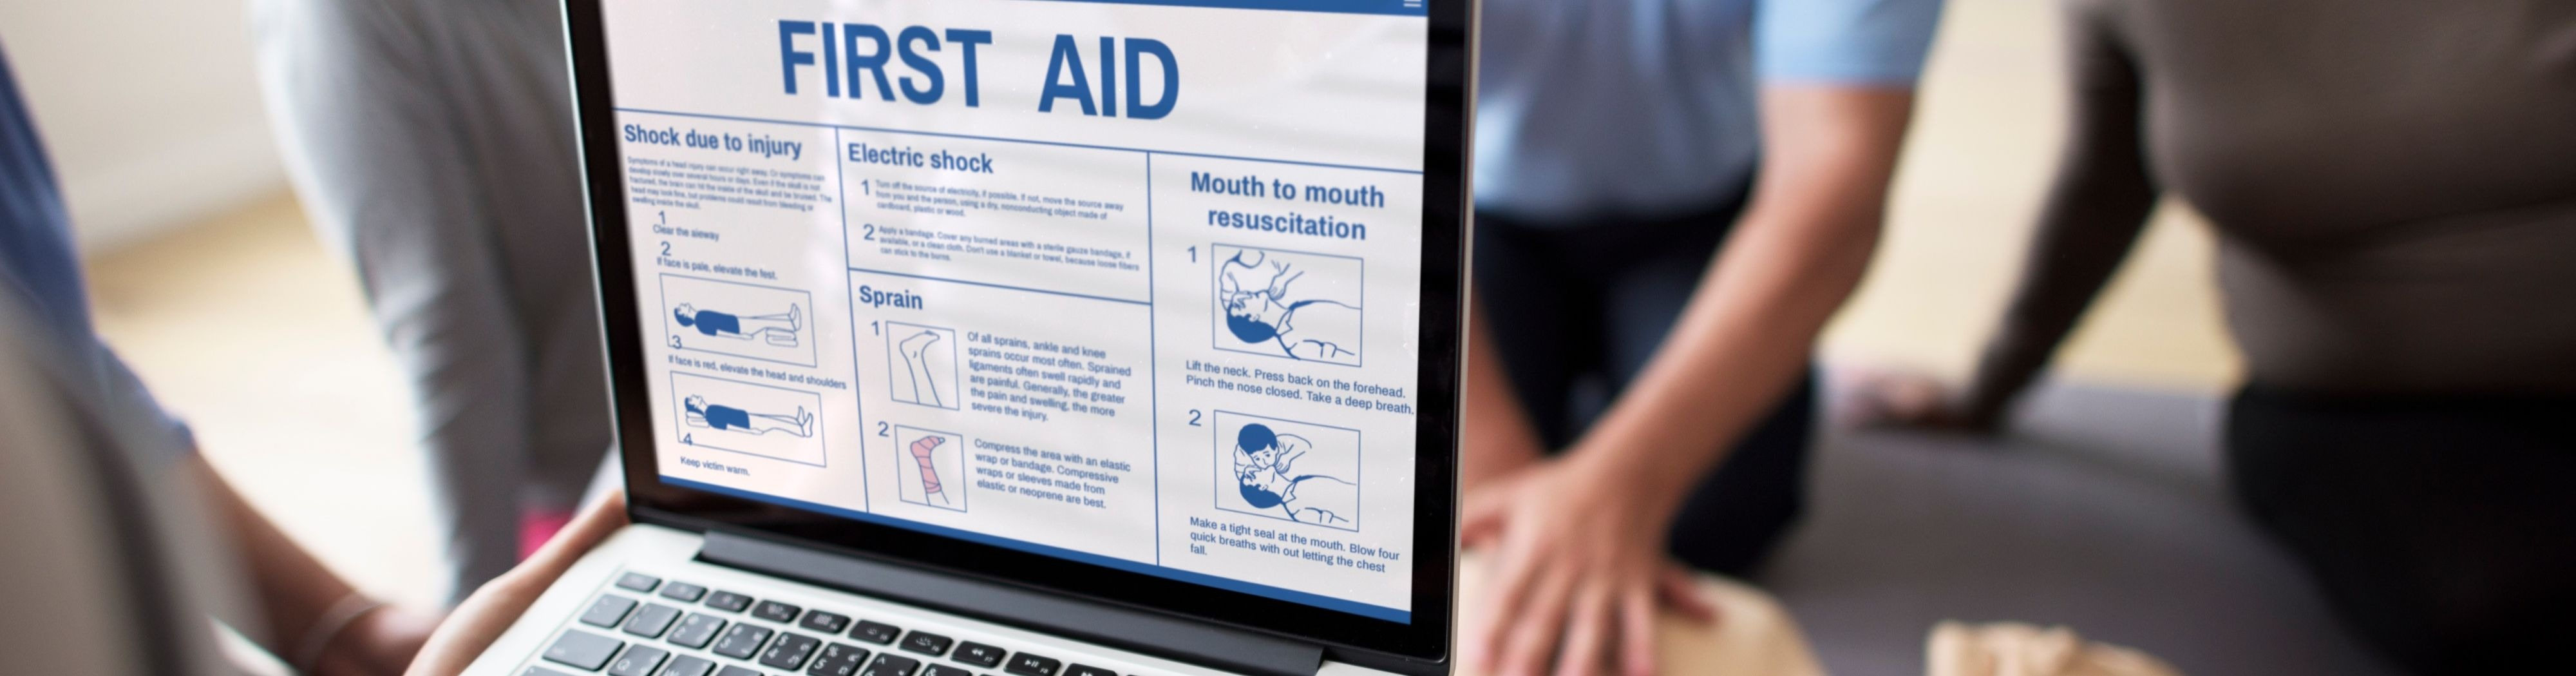 Learning CPR from Home: Why You Should Become Certified Online